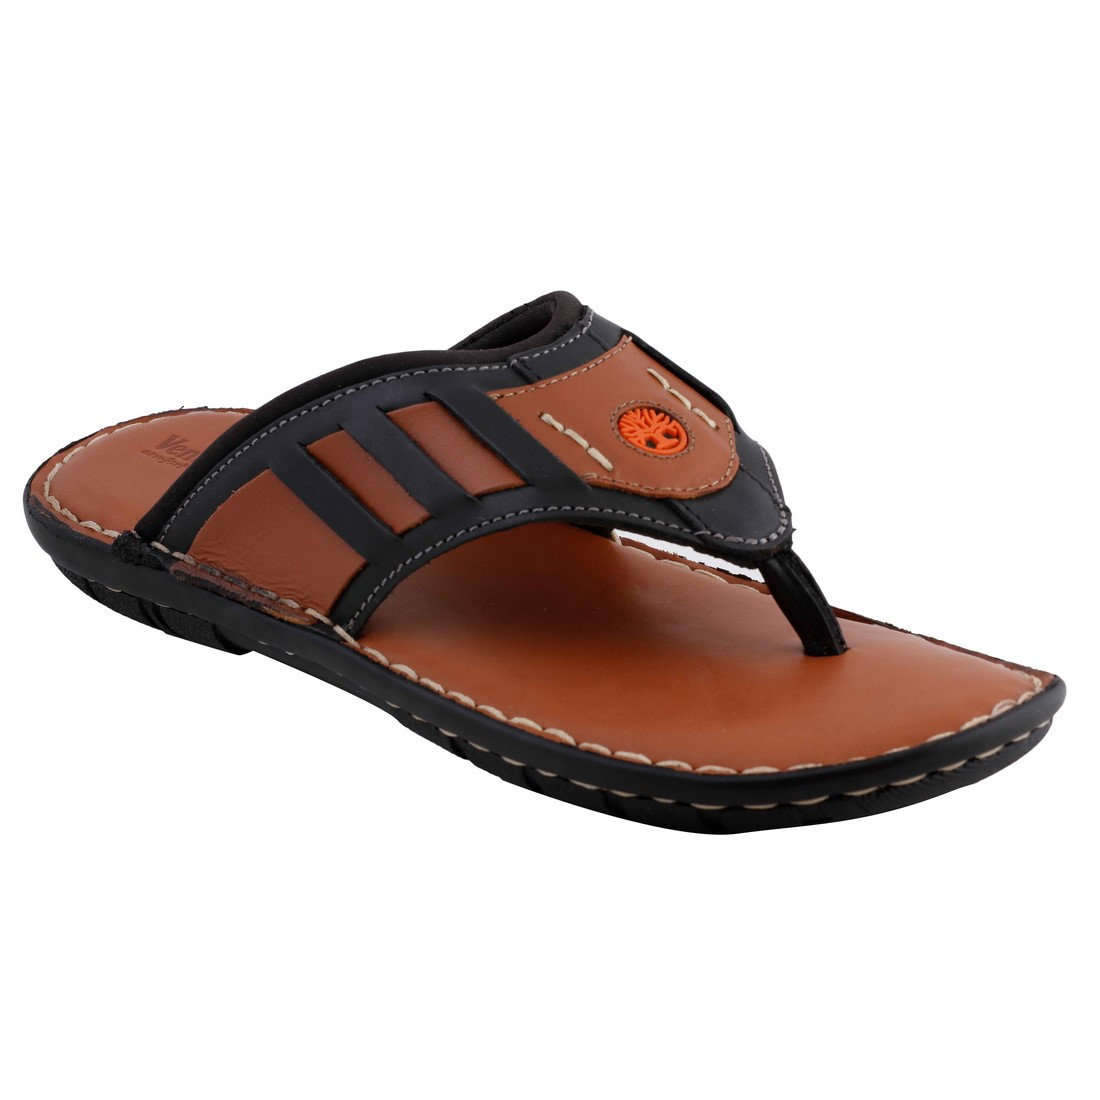 Ventoland MenS Tan Slip-On Sandals (GWVLF-0202A)